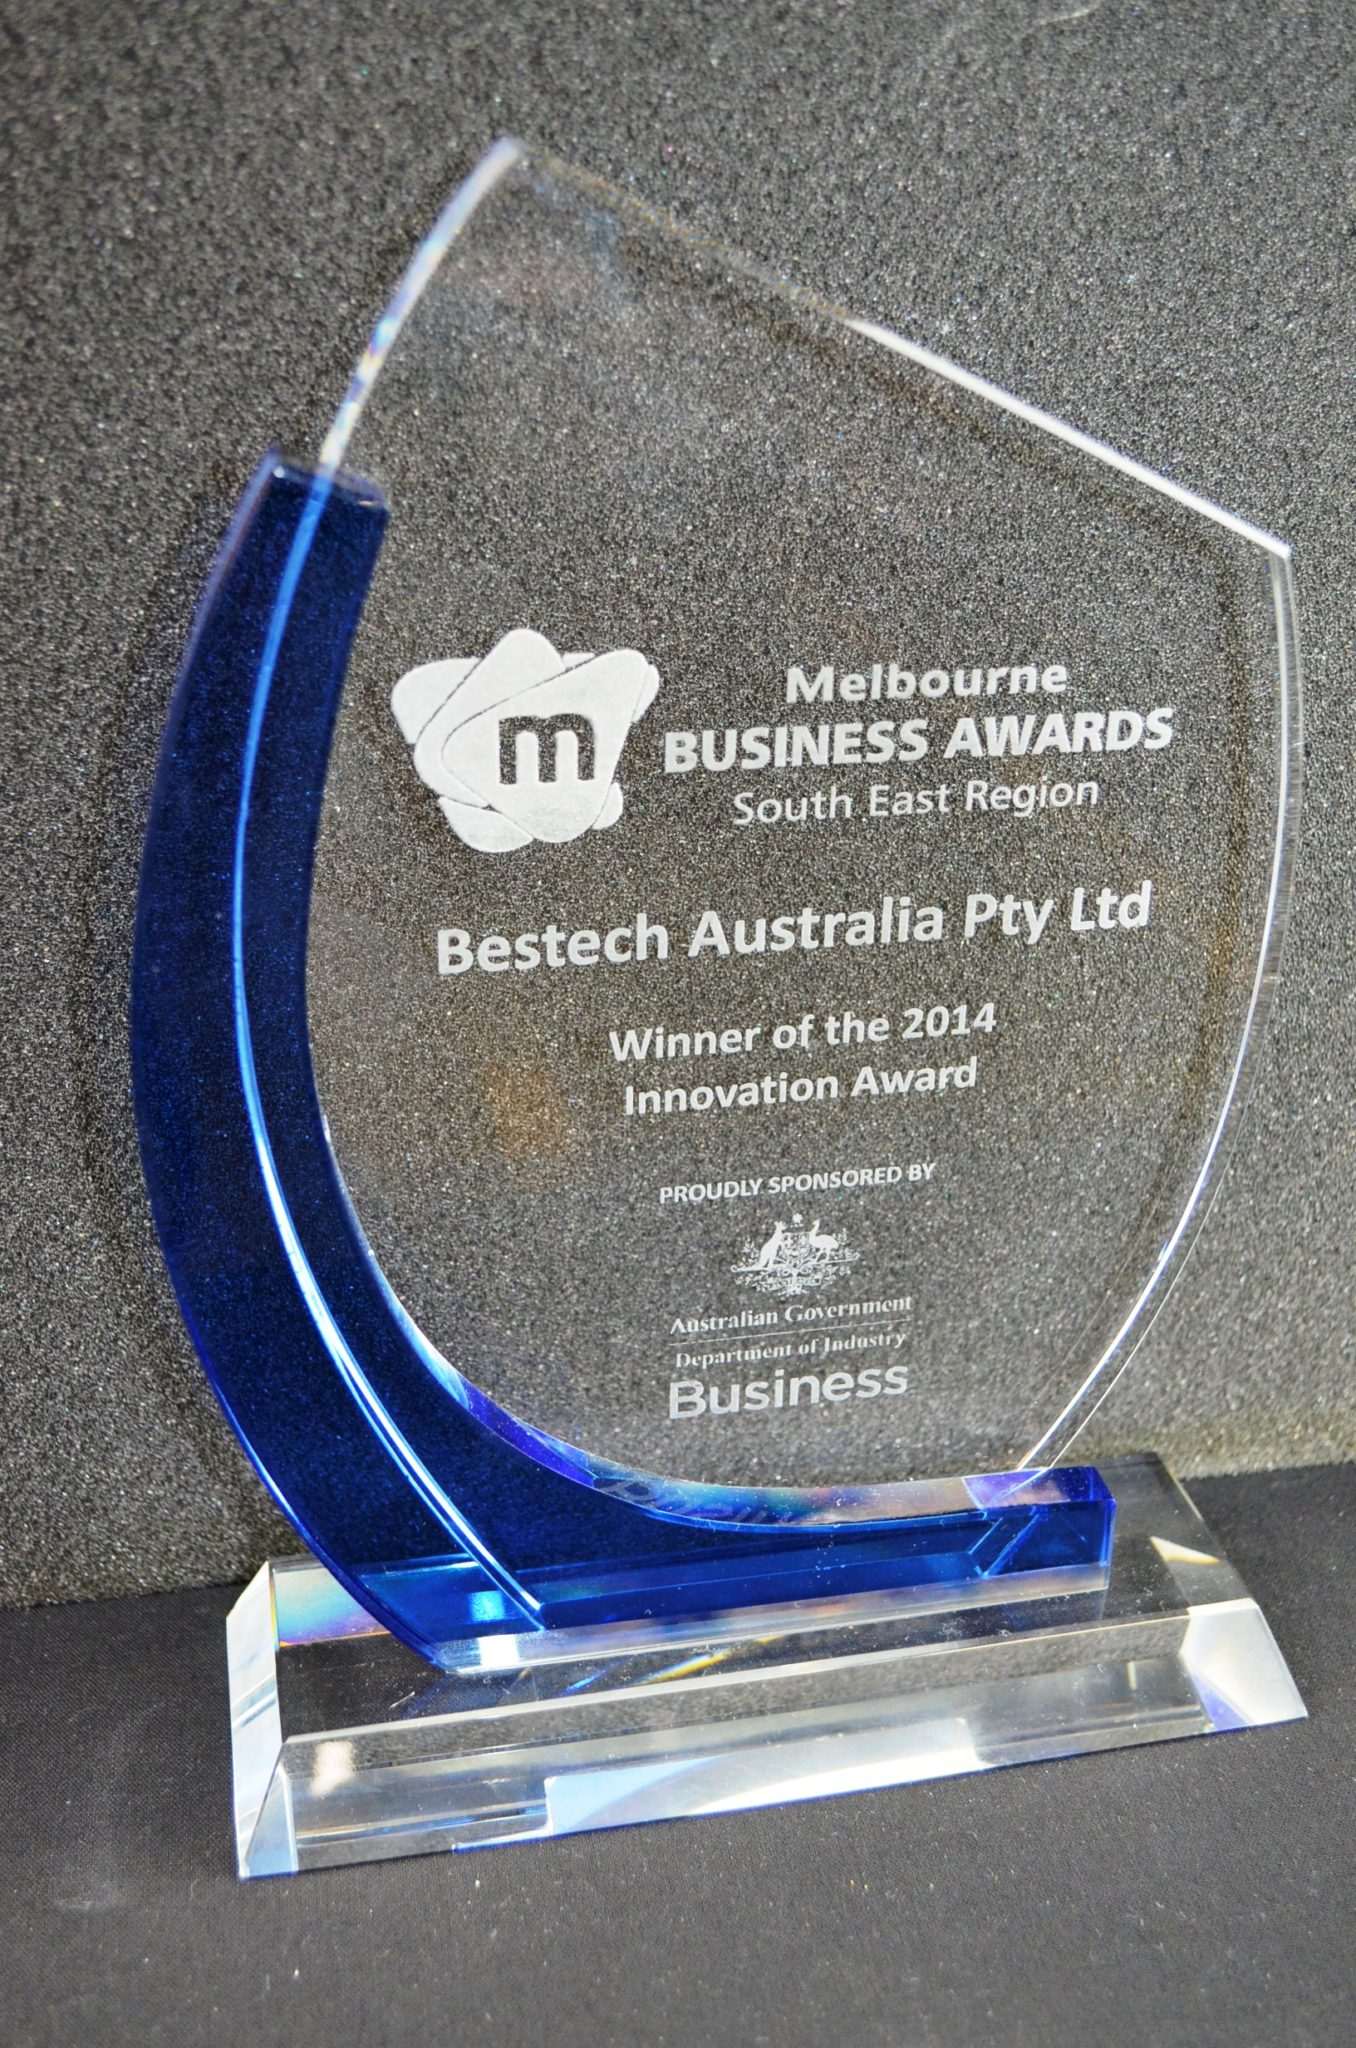 Melbourne Business Award 2014 Trophy